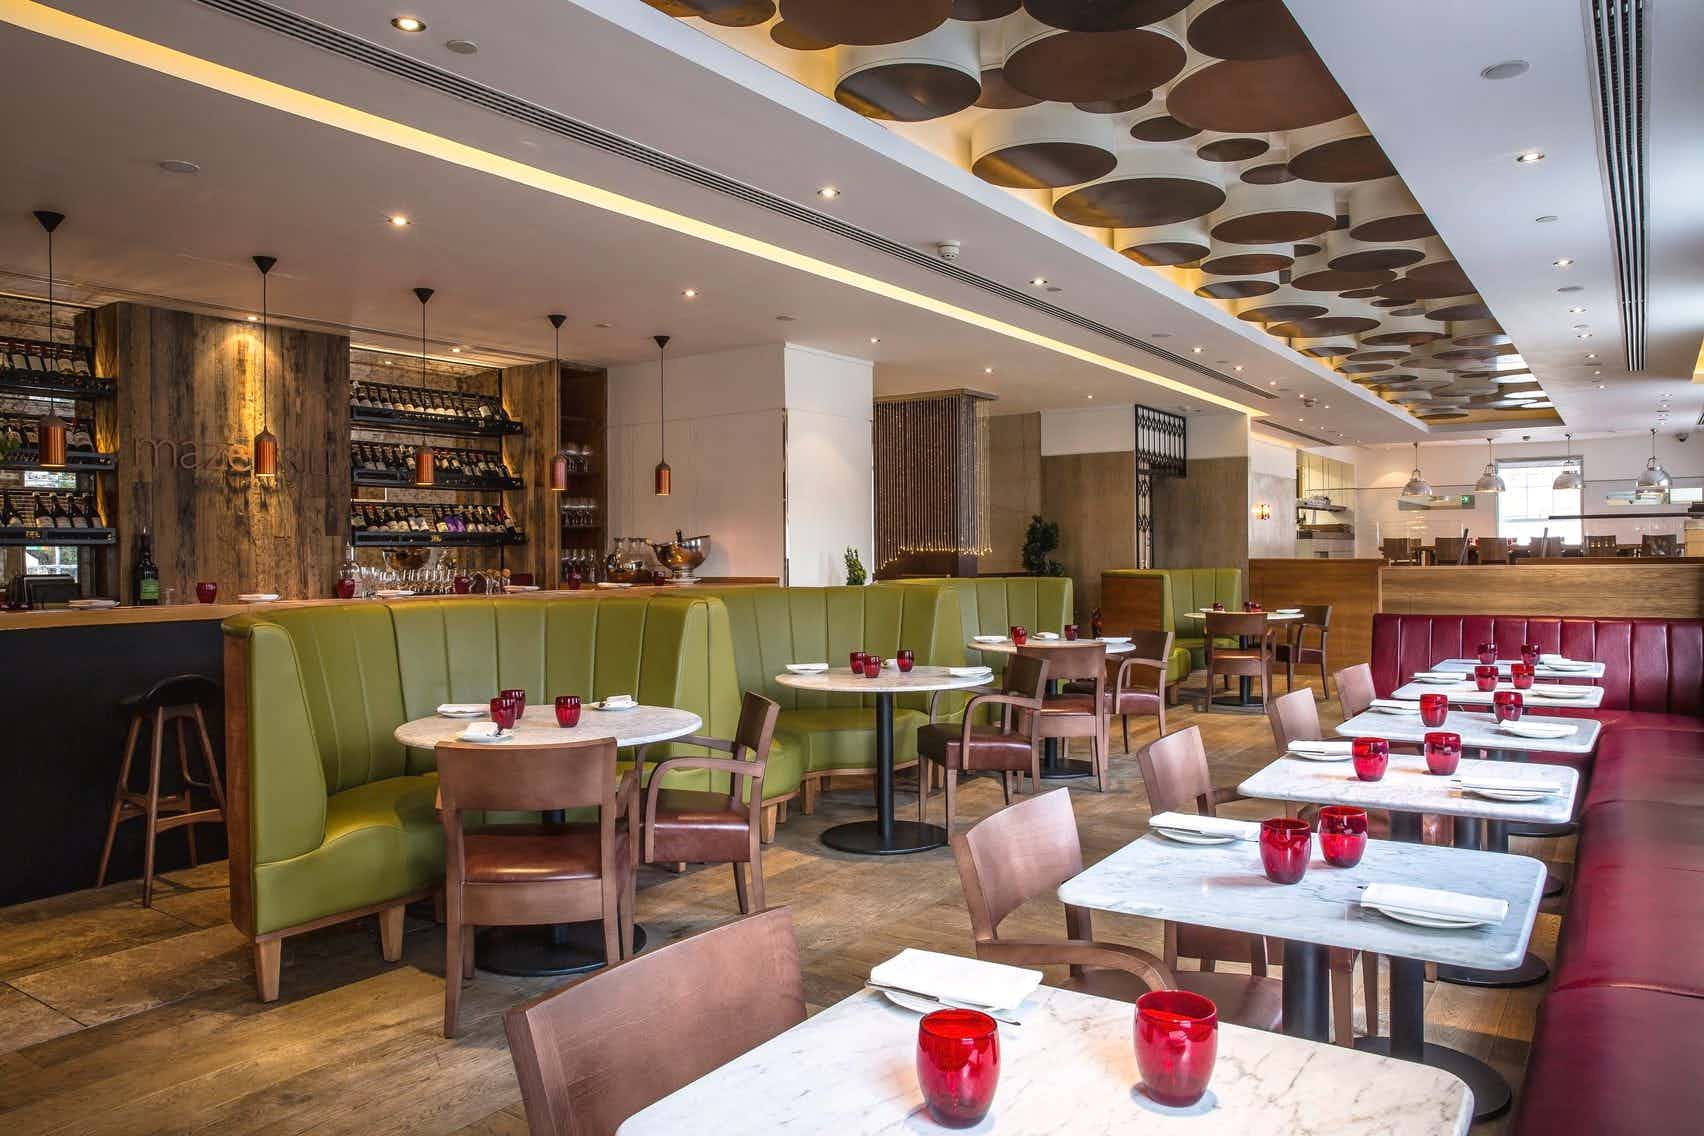 Maze Grill - A private Dining Room for Hire in Mayfair